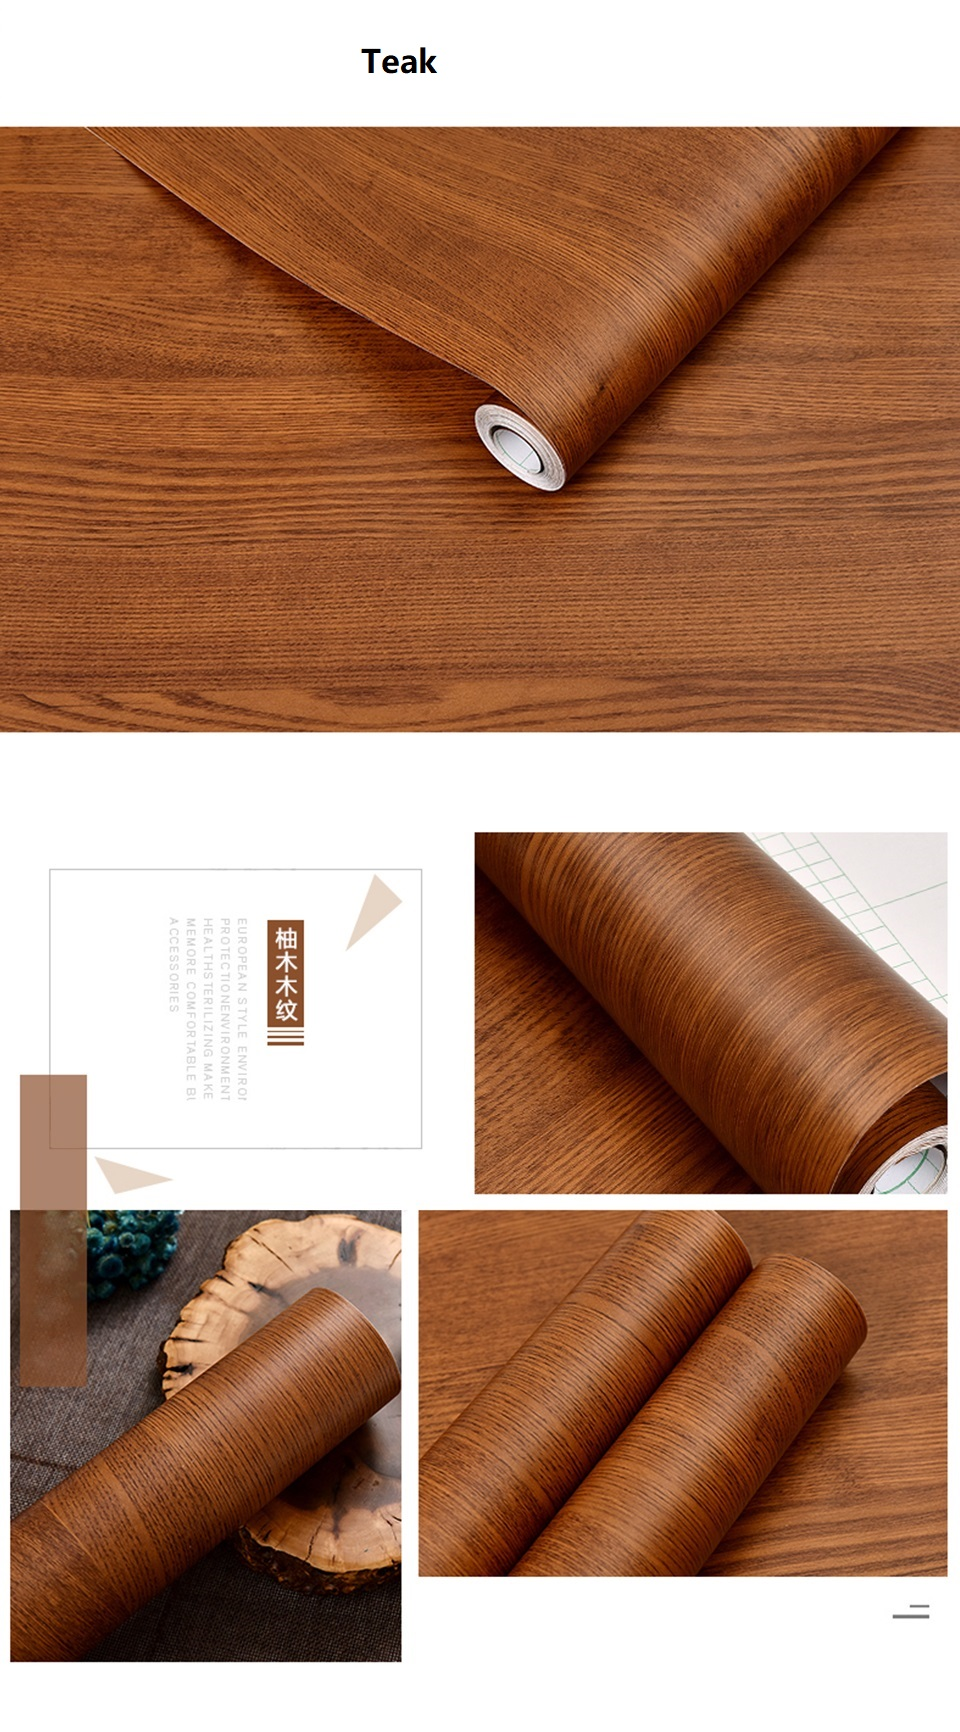 PVC Vinyl Wood Grain Contact Paper for Kitchen Cabinets Table Sticker Waterproof Self adhesive Wallpaper Phone Case Stickers HTB1ikF4hWSWBuNjSsrbq6y0mVXaX